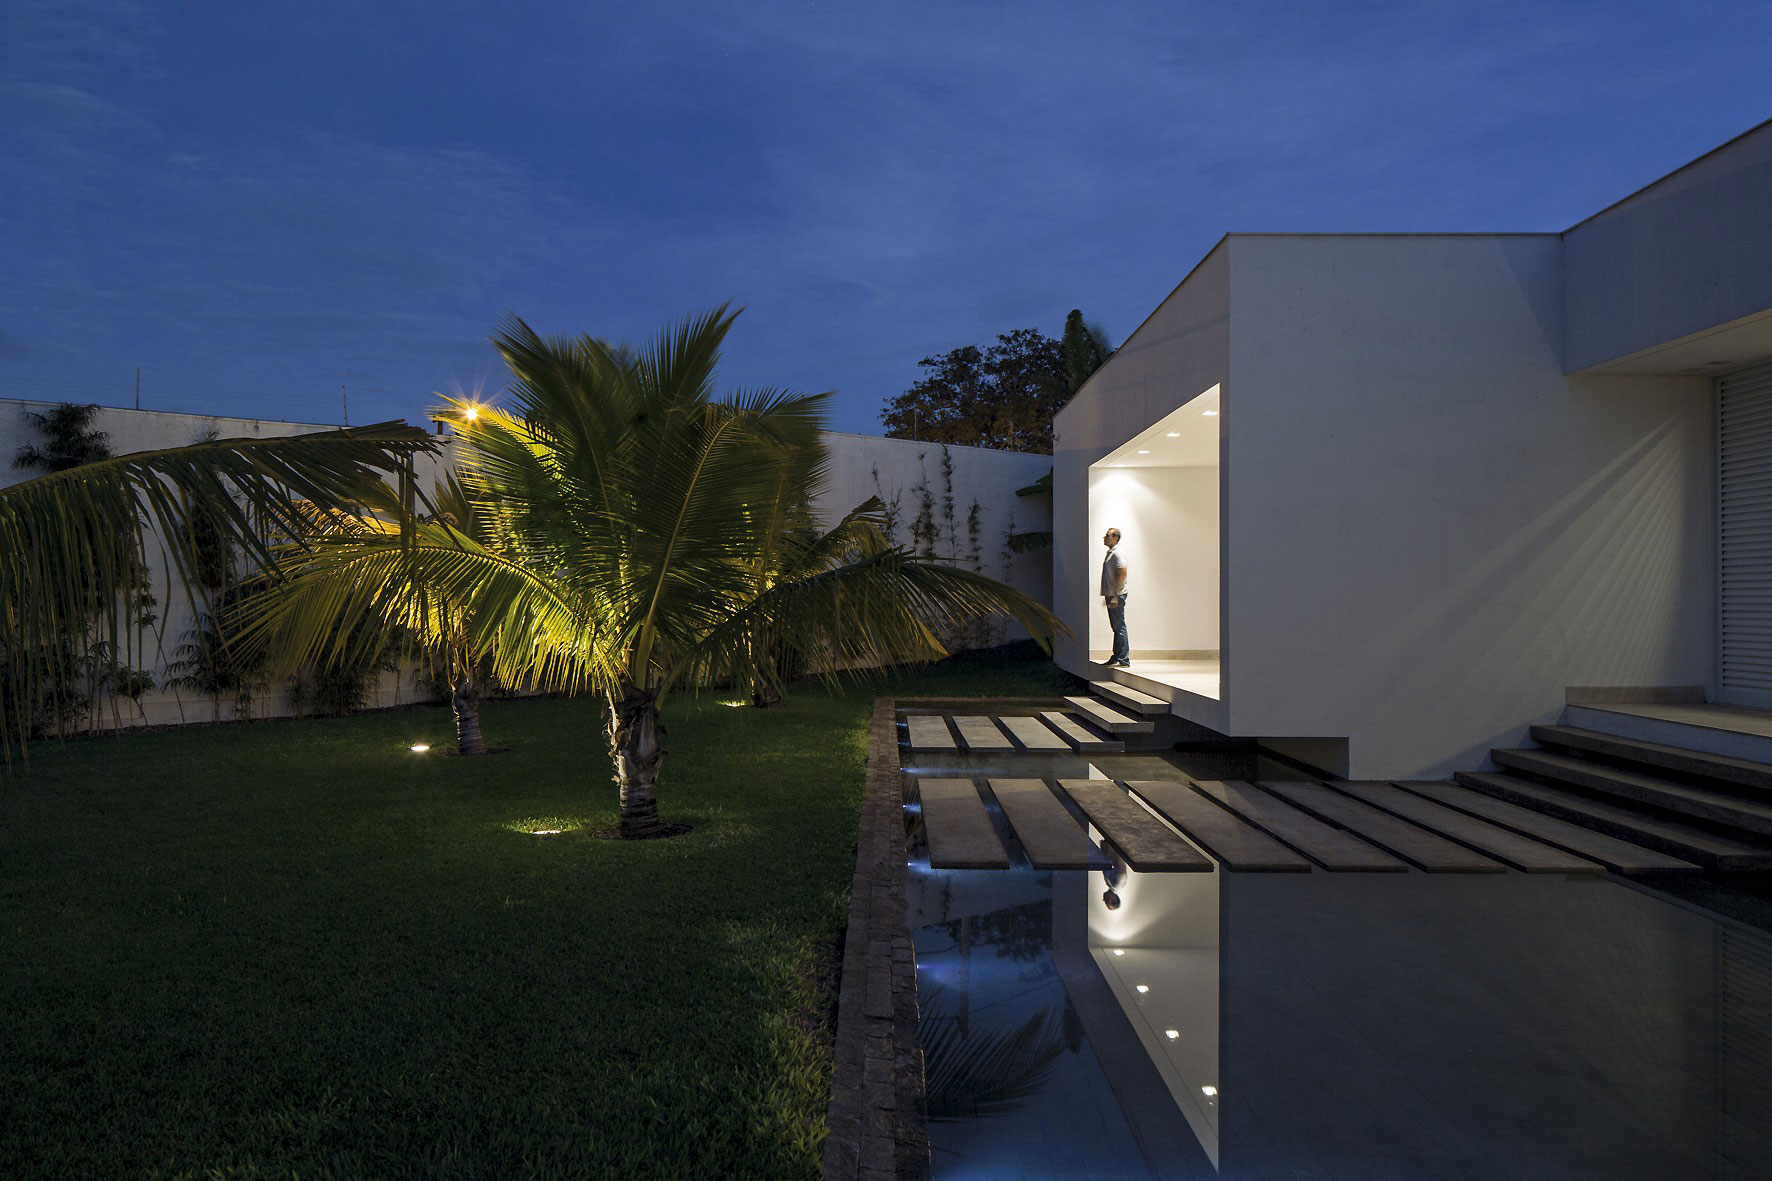 Water Feature, Evening, Lighting, Steps, Home in Uberlandia, Brazil